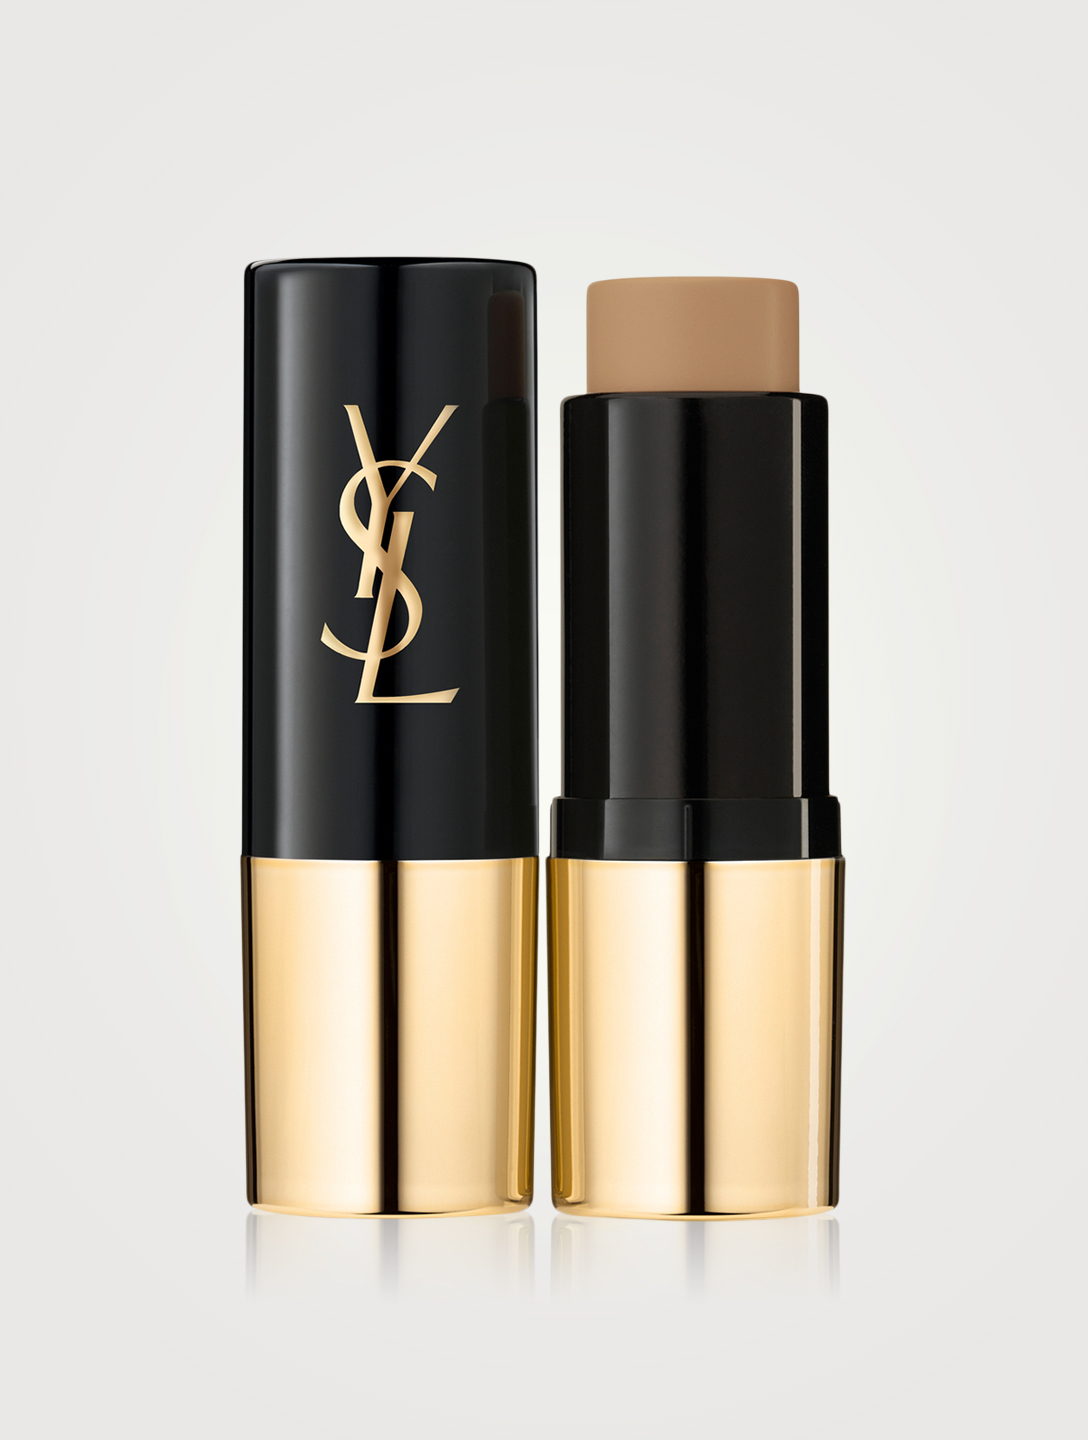 YVES SAINT LAURENT Fond de teint All Hours Beauté Écru